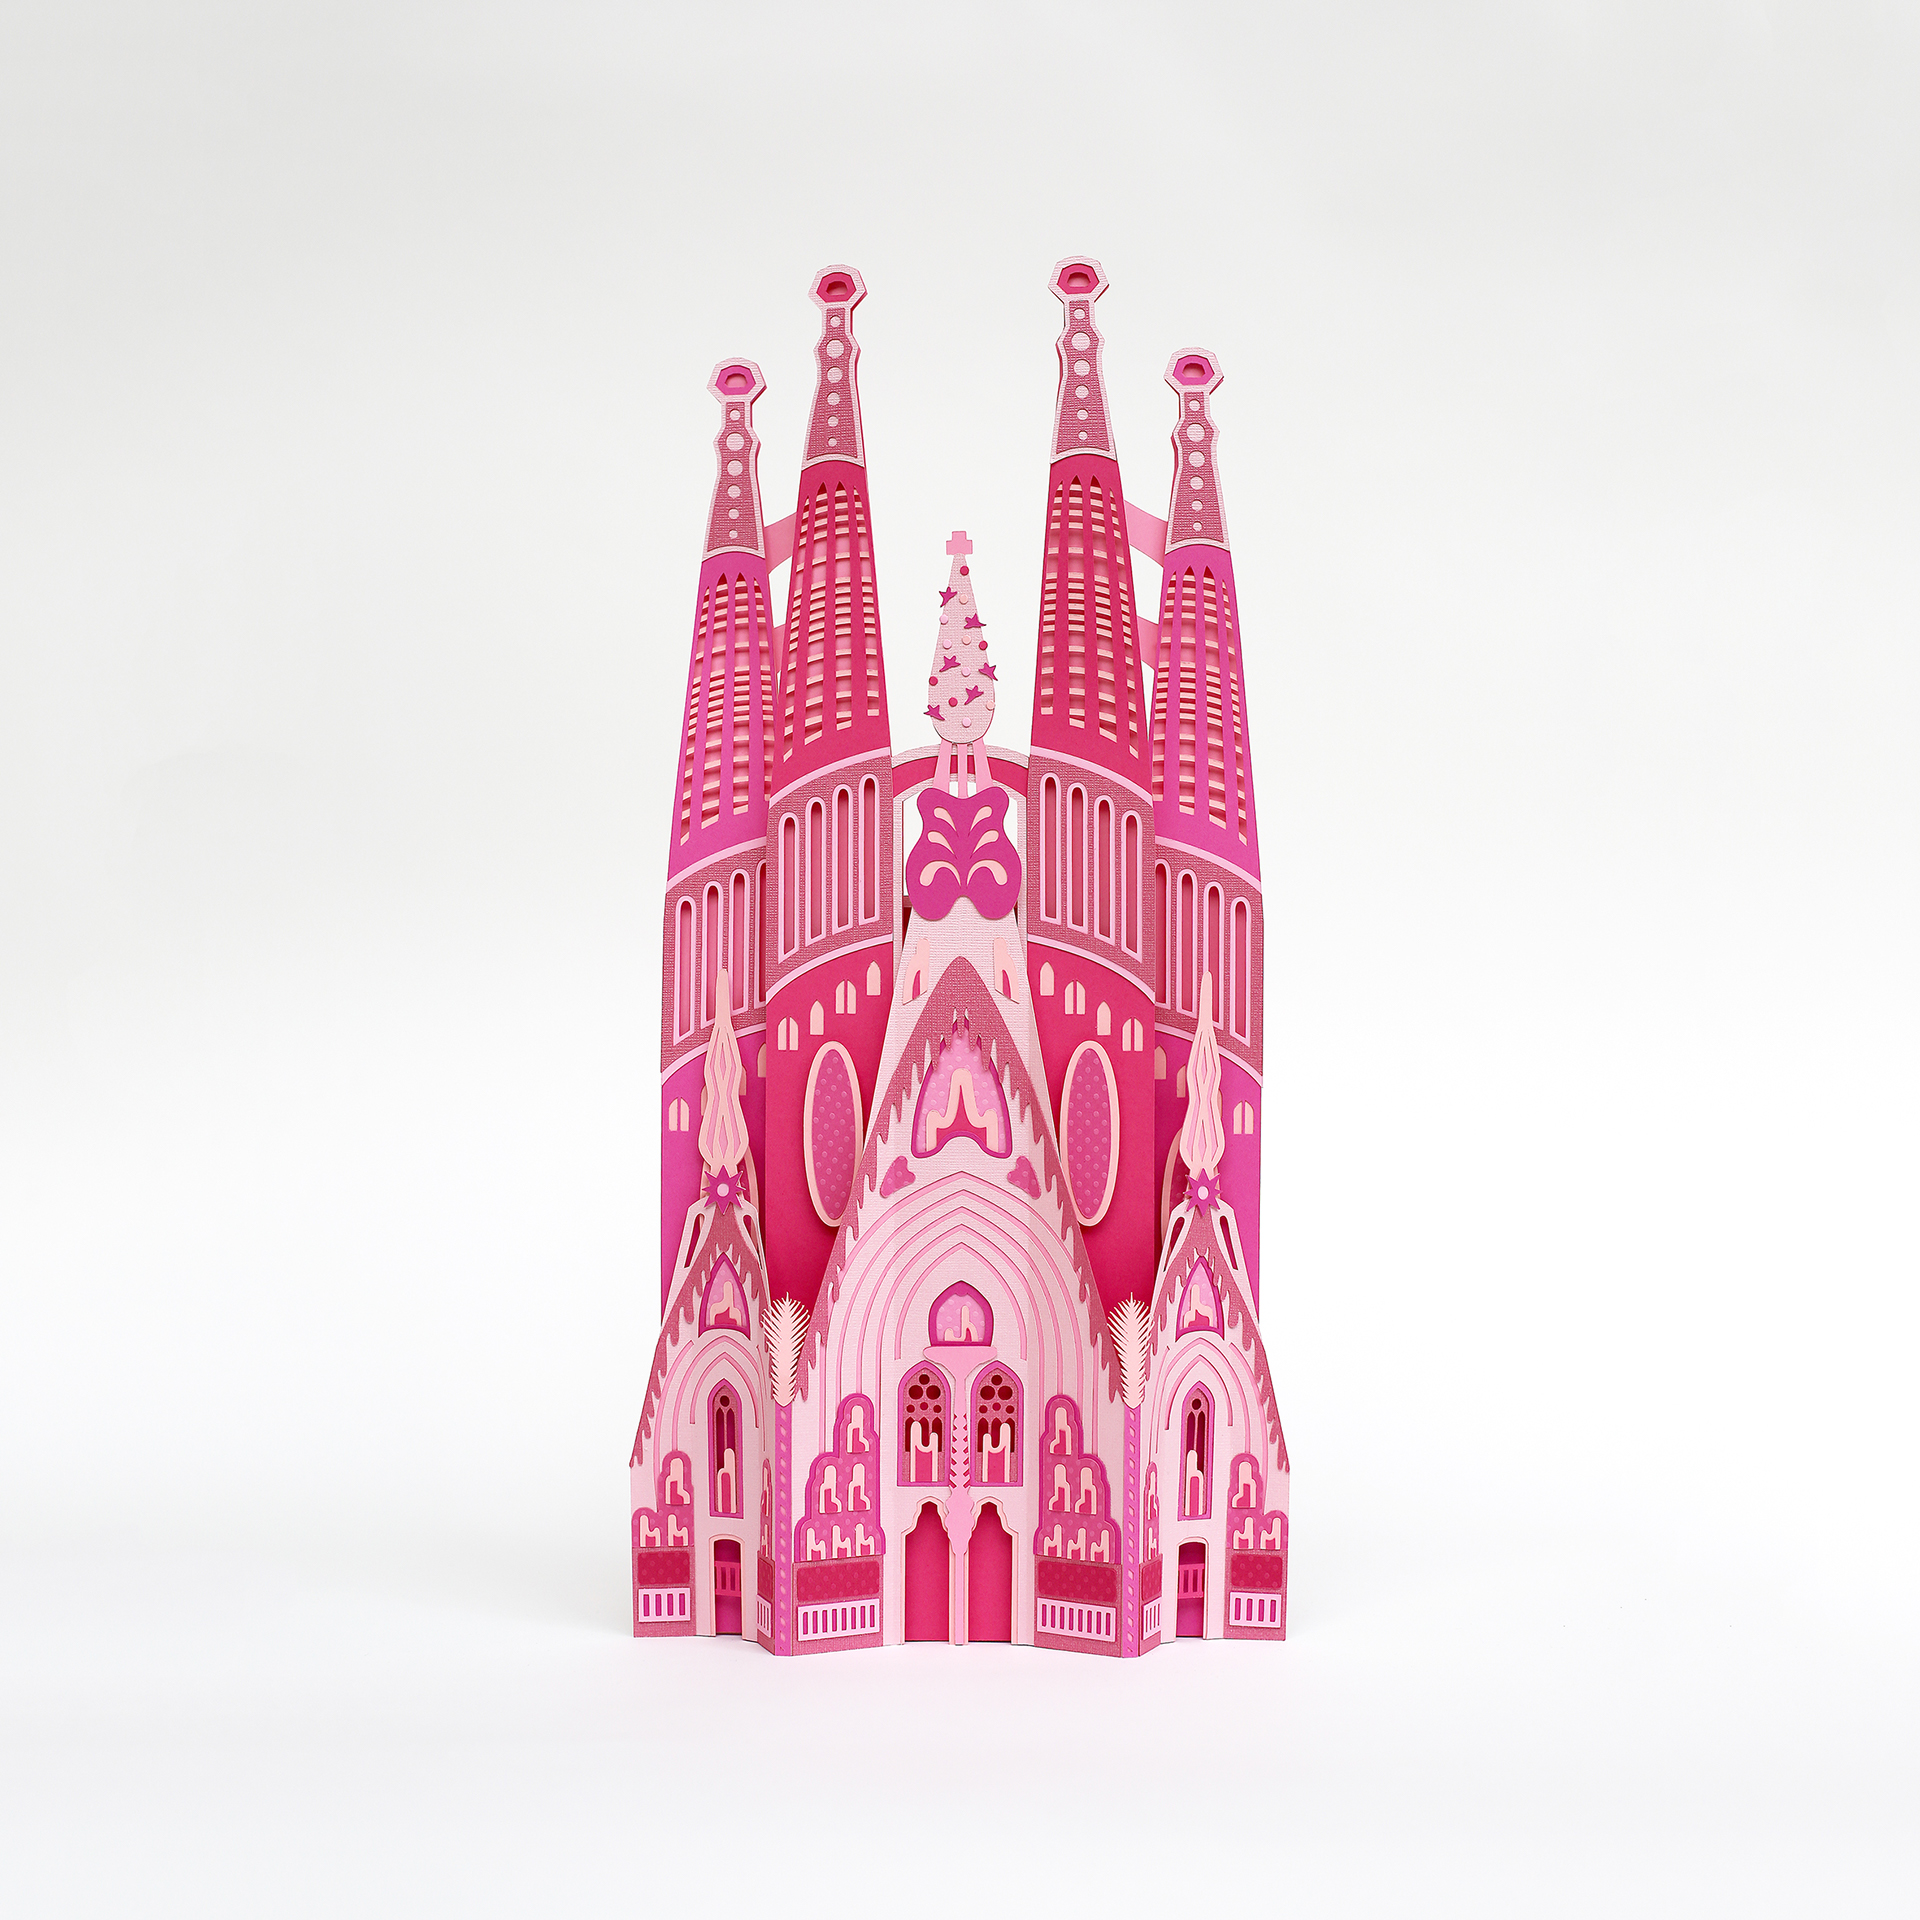 Barcelona's Architectural Landmarks Crafted in Pink Paper - Freixenet - Sagrada de Familia